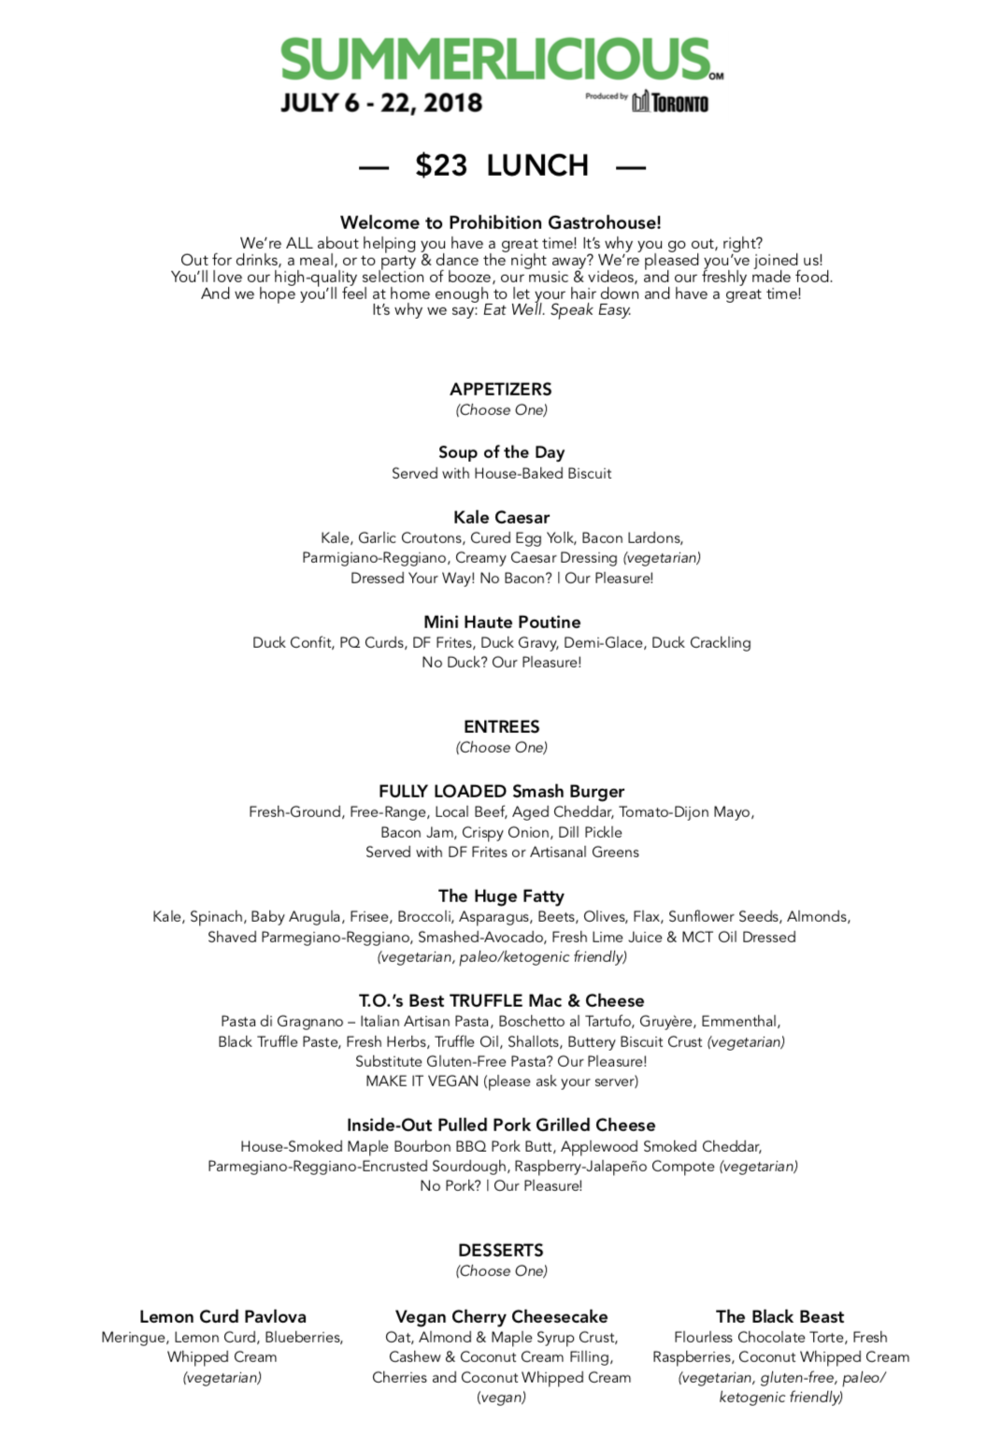 Prohibition Gastrohouse - Summerlicious 2018 - Lunch Menu